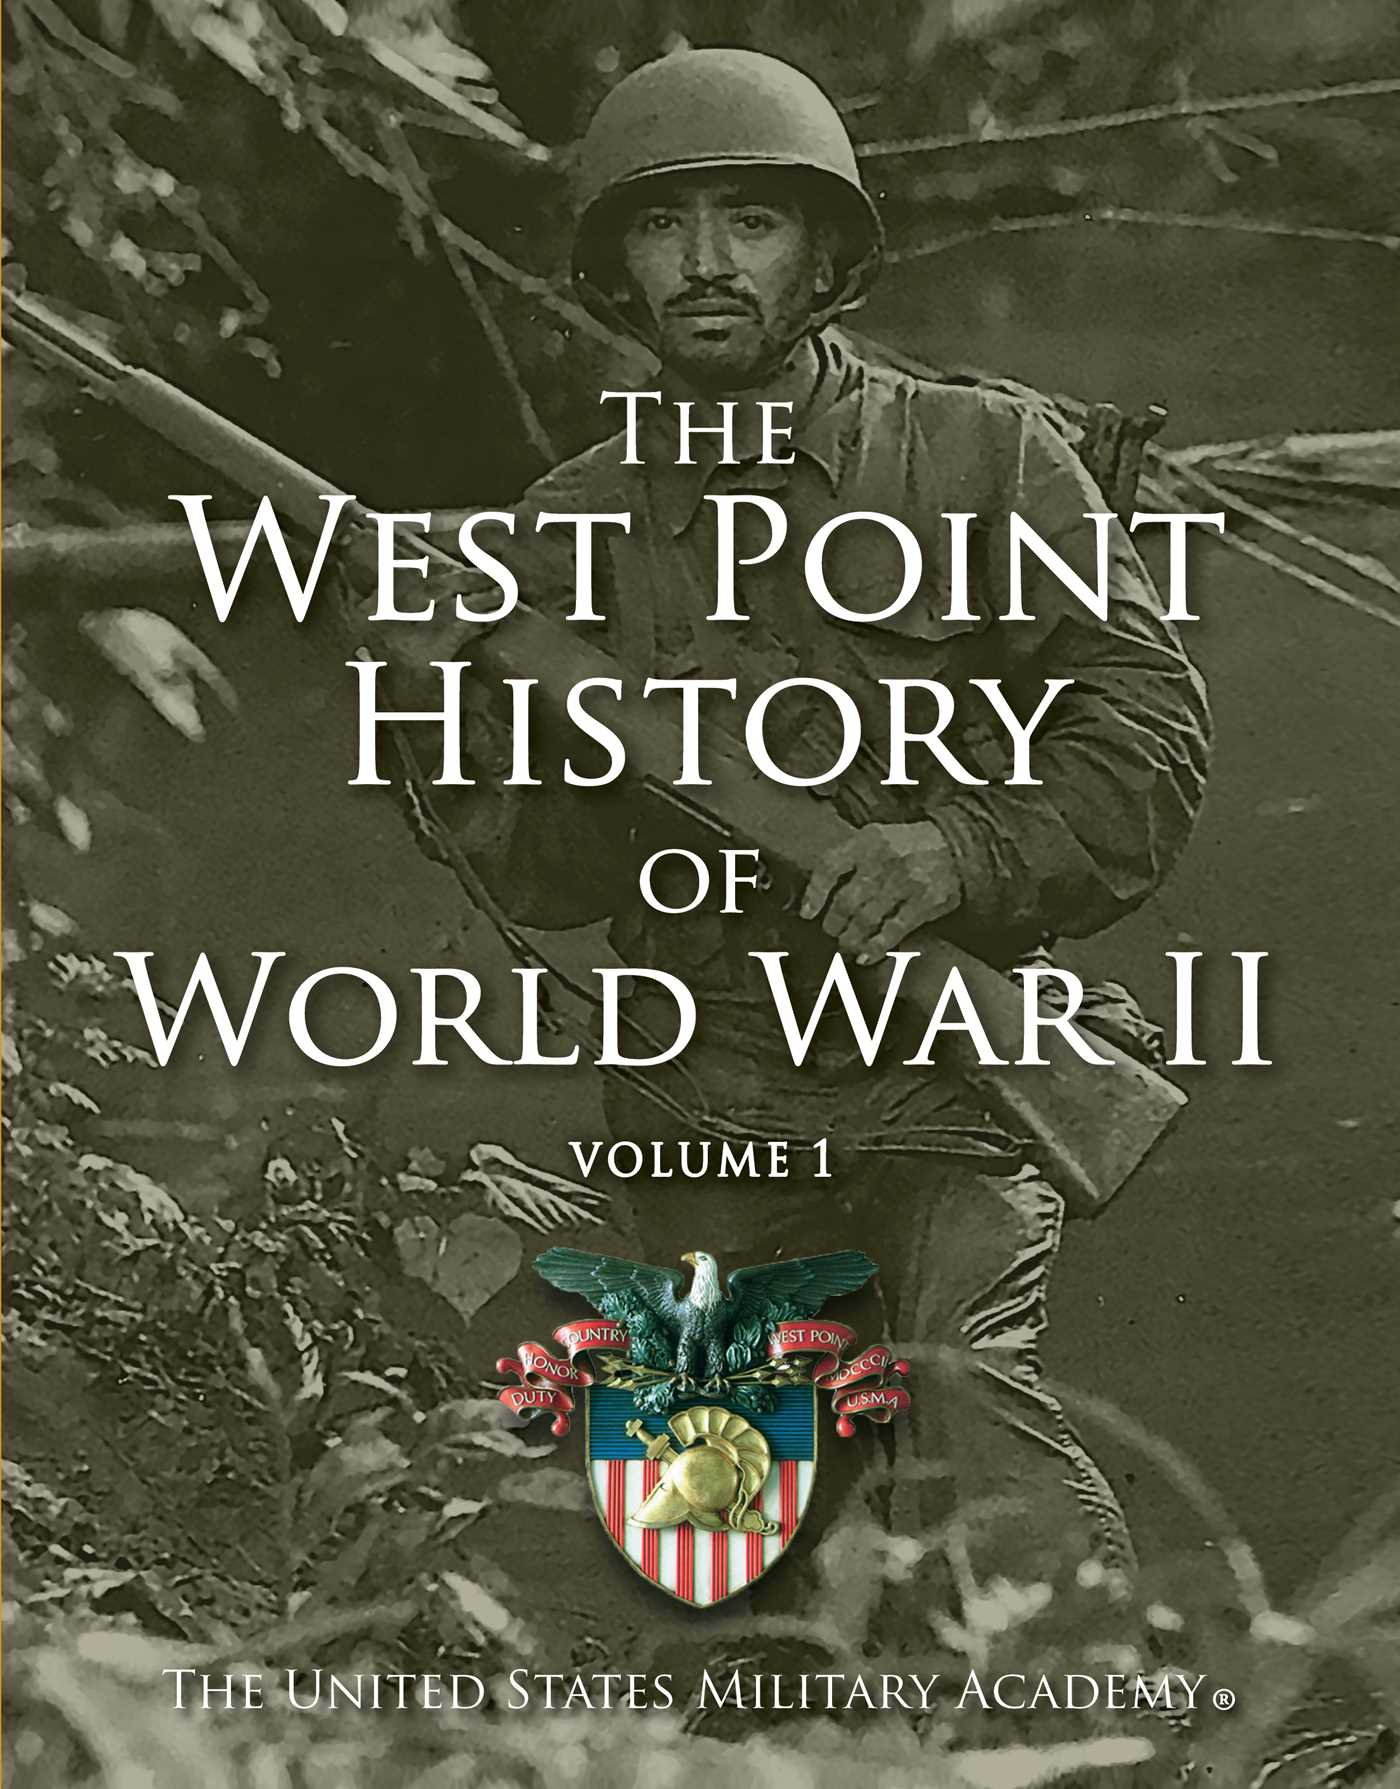 West Point History of World War II Vol 1 The West Point History